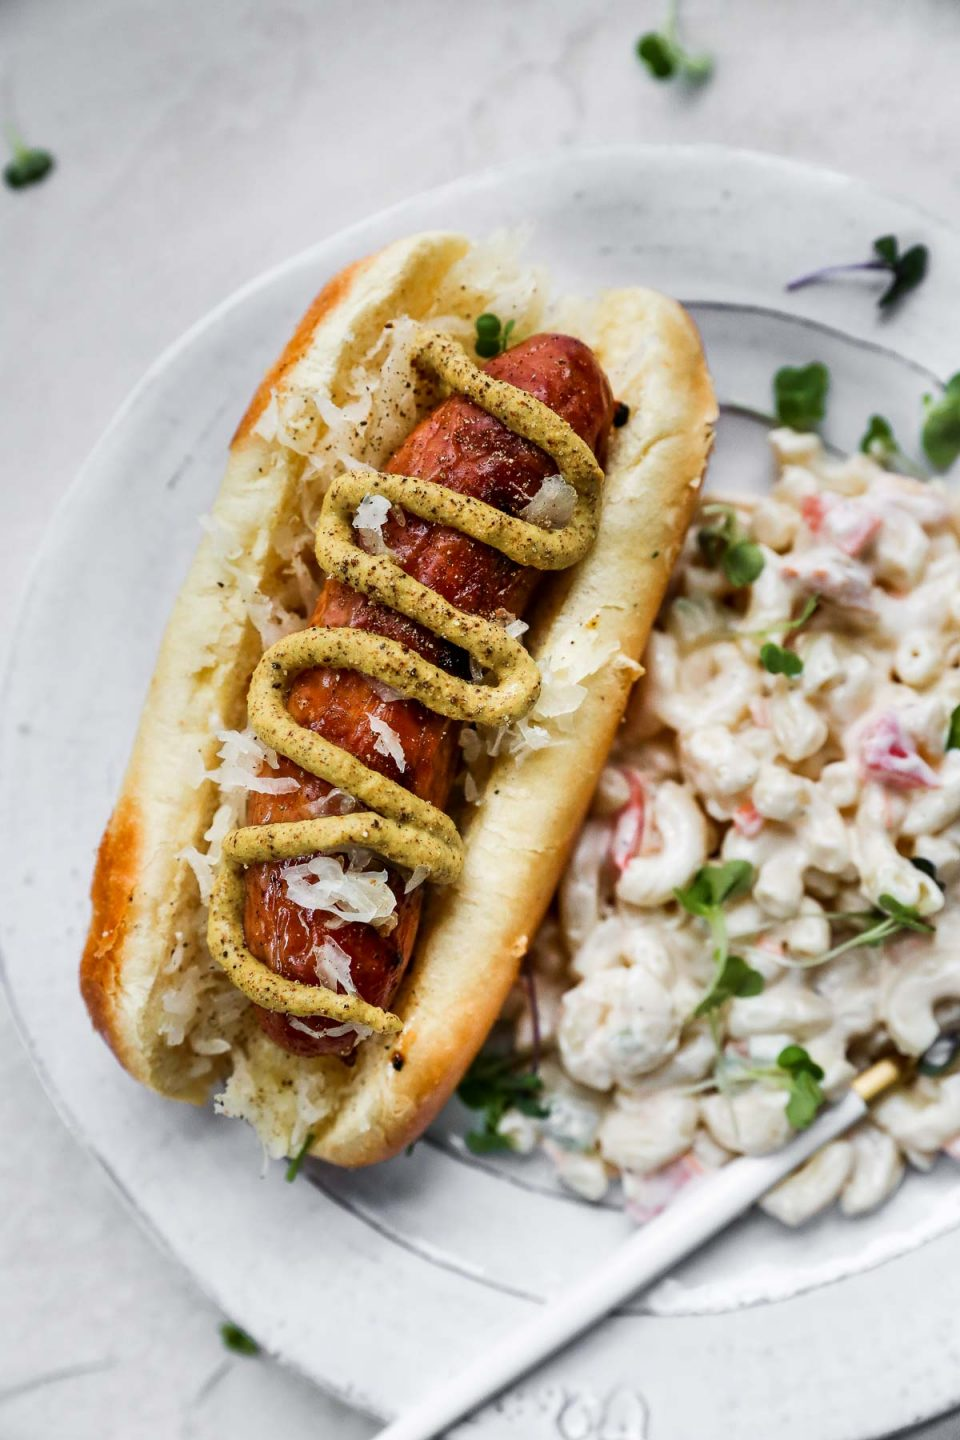 Close up of Grilled Sausage on a bun, topped with brown mustard. The sausage is plated with a simple macaroni salad on the side, on a white plate with a gold & white fork.